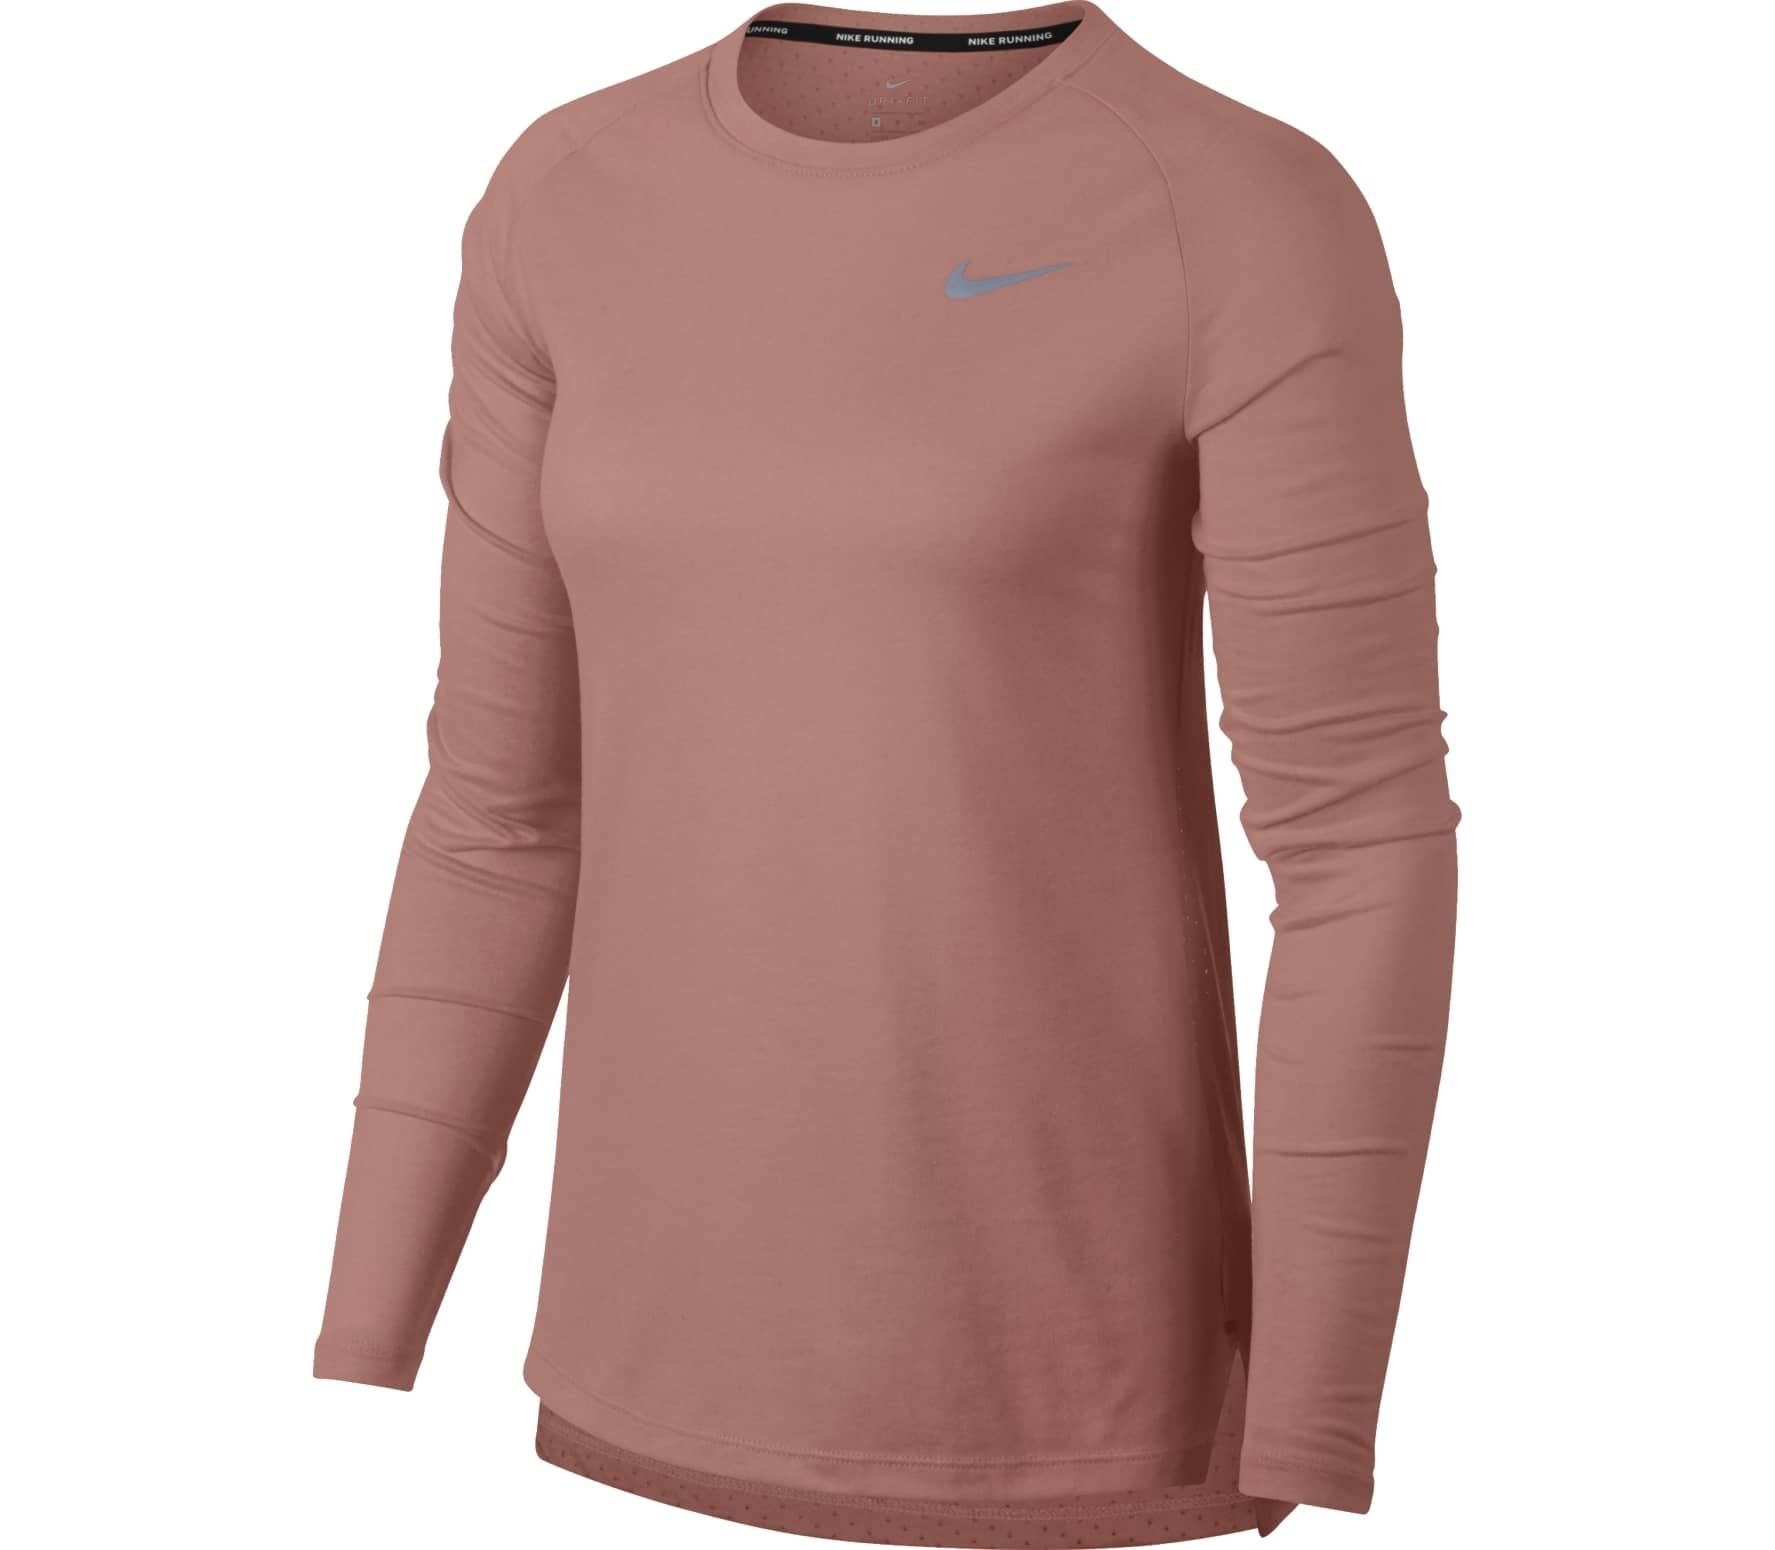 2121559e1d2b30 Nike - Tailwind women's long-sleeved top (pink) - buy it at the ...